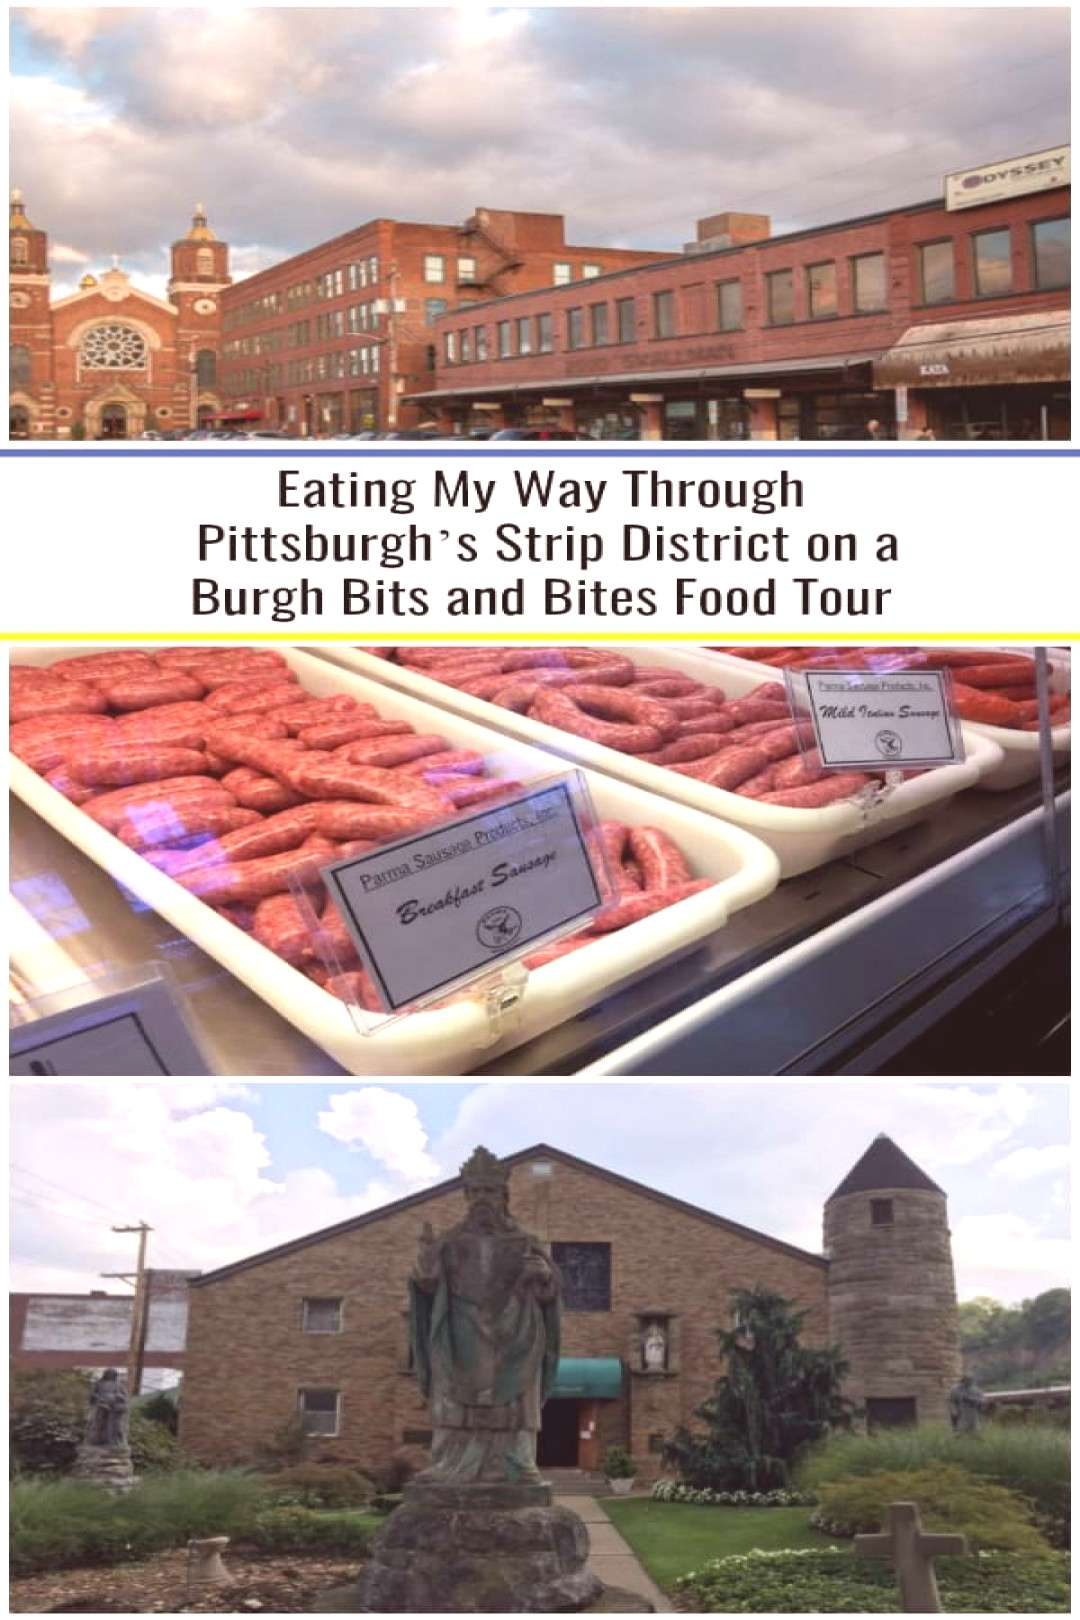 Eating my way through Pittsburghs Strip District on a Burgh Bits and Bites Food Tour